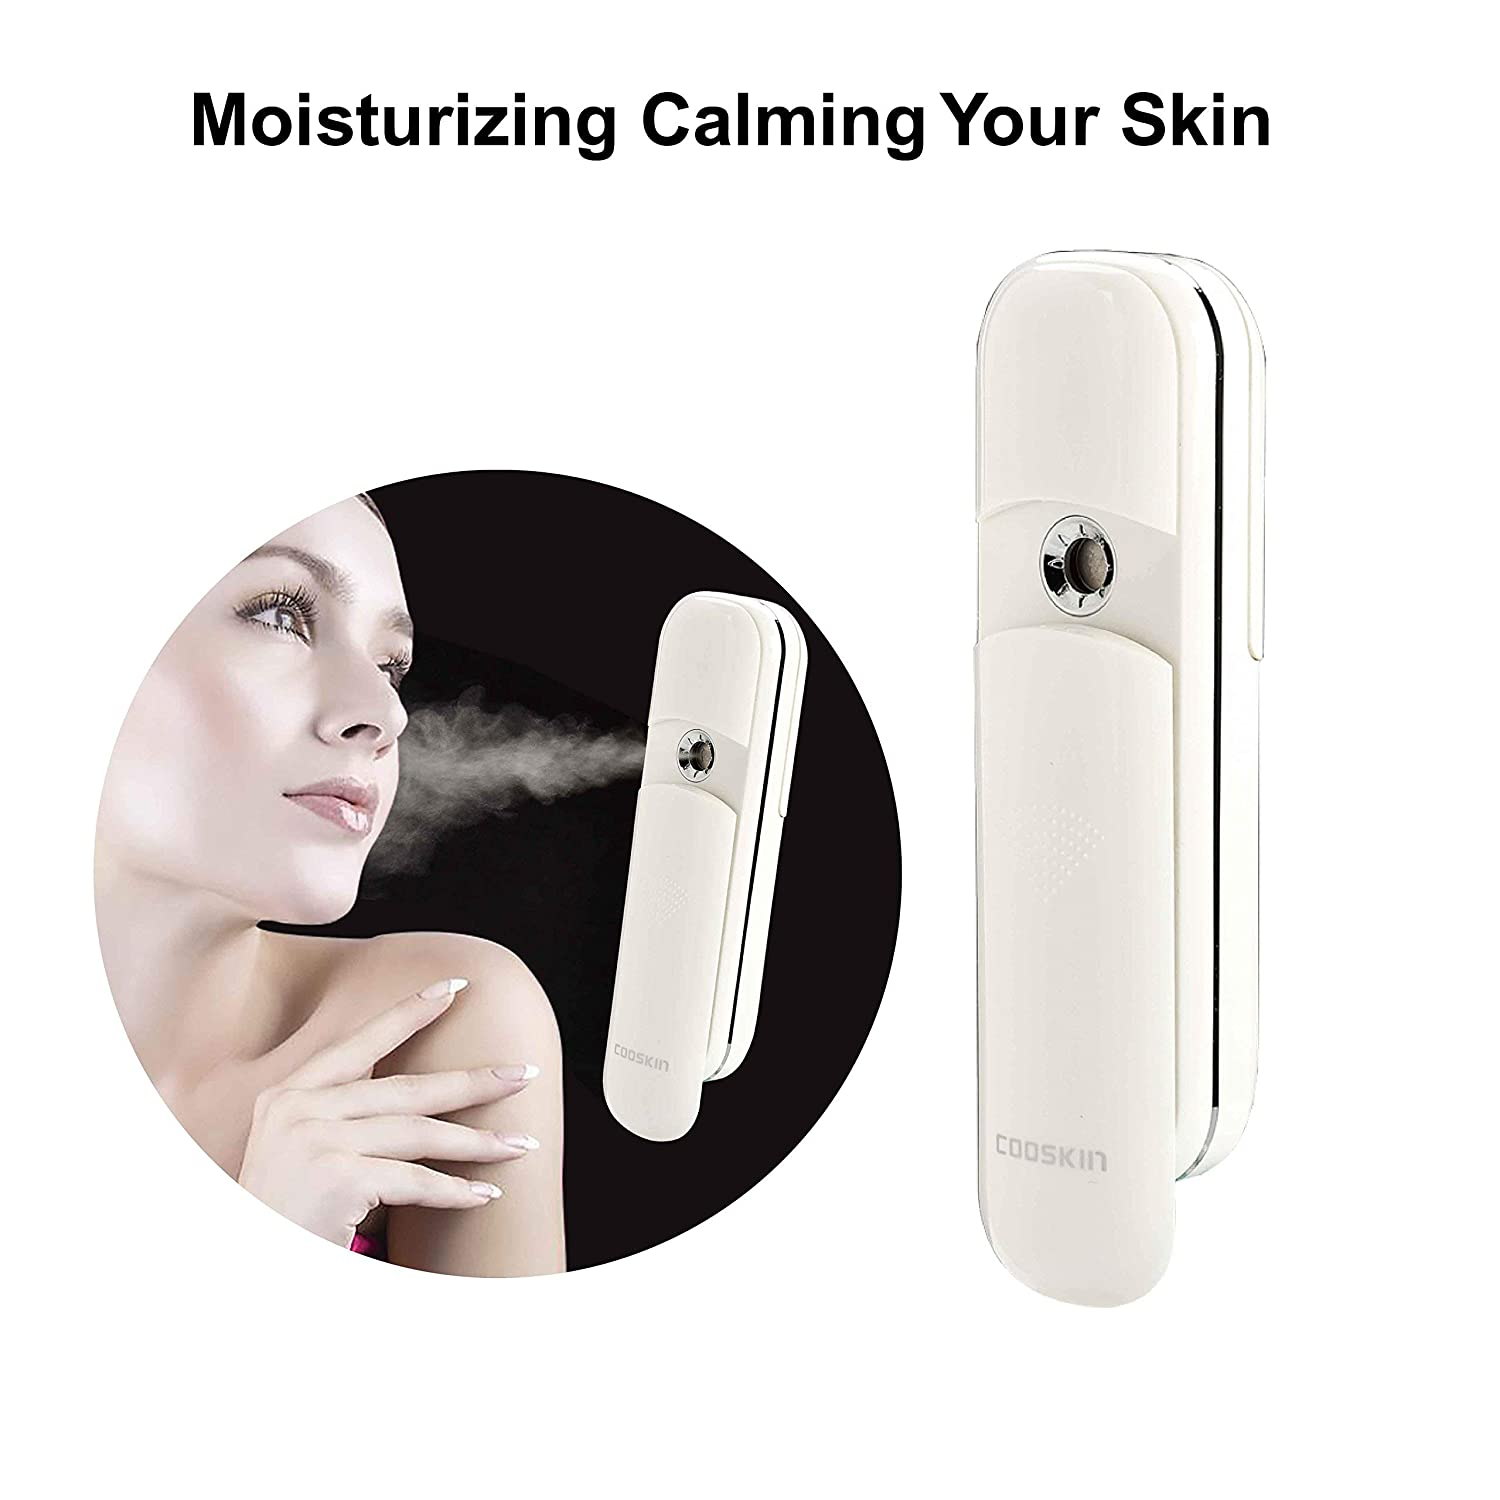 COOSKIN Anzikang Nano Handy Mist Spray Atomization Facial Mister Eyelash Extensions Humectant Steamer Moisturizing Eyes Beauty Instrument (White)